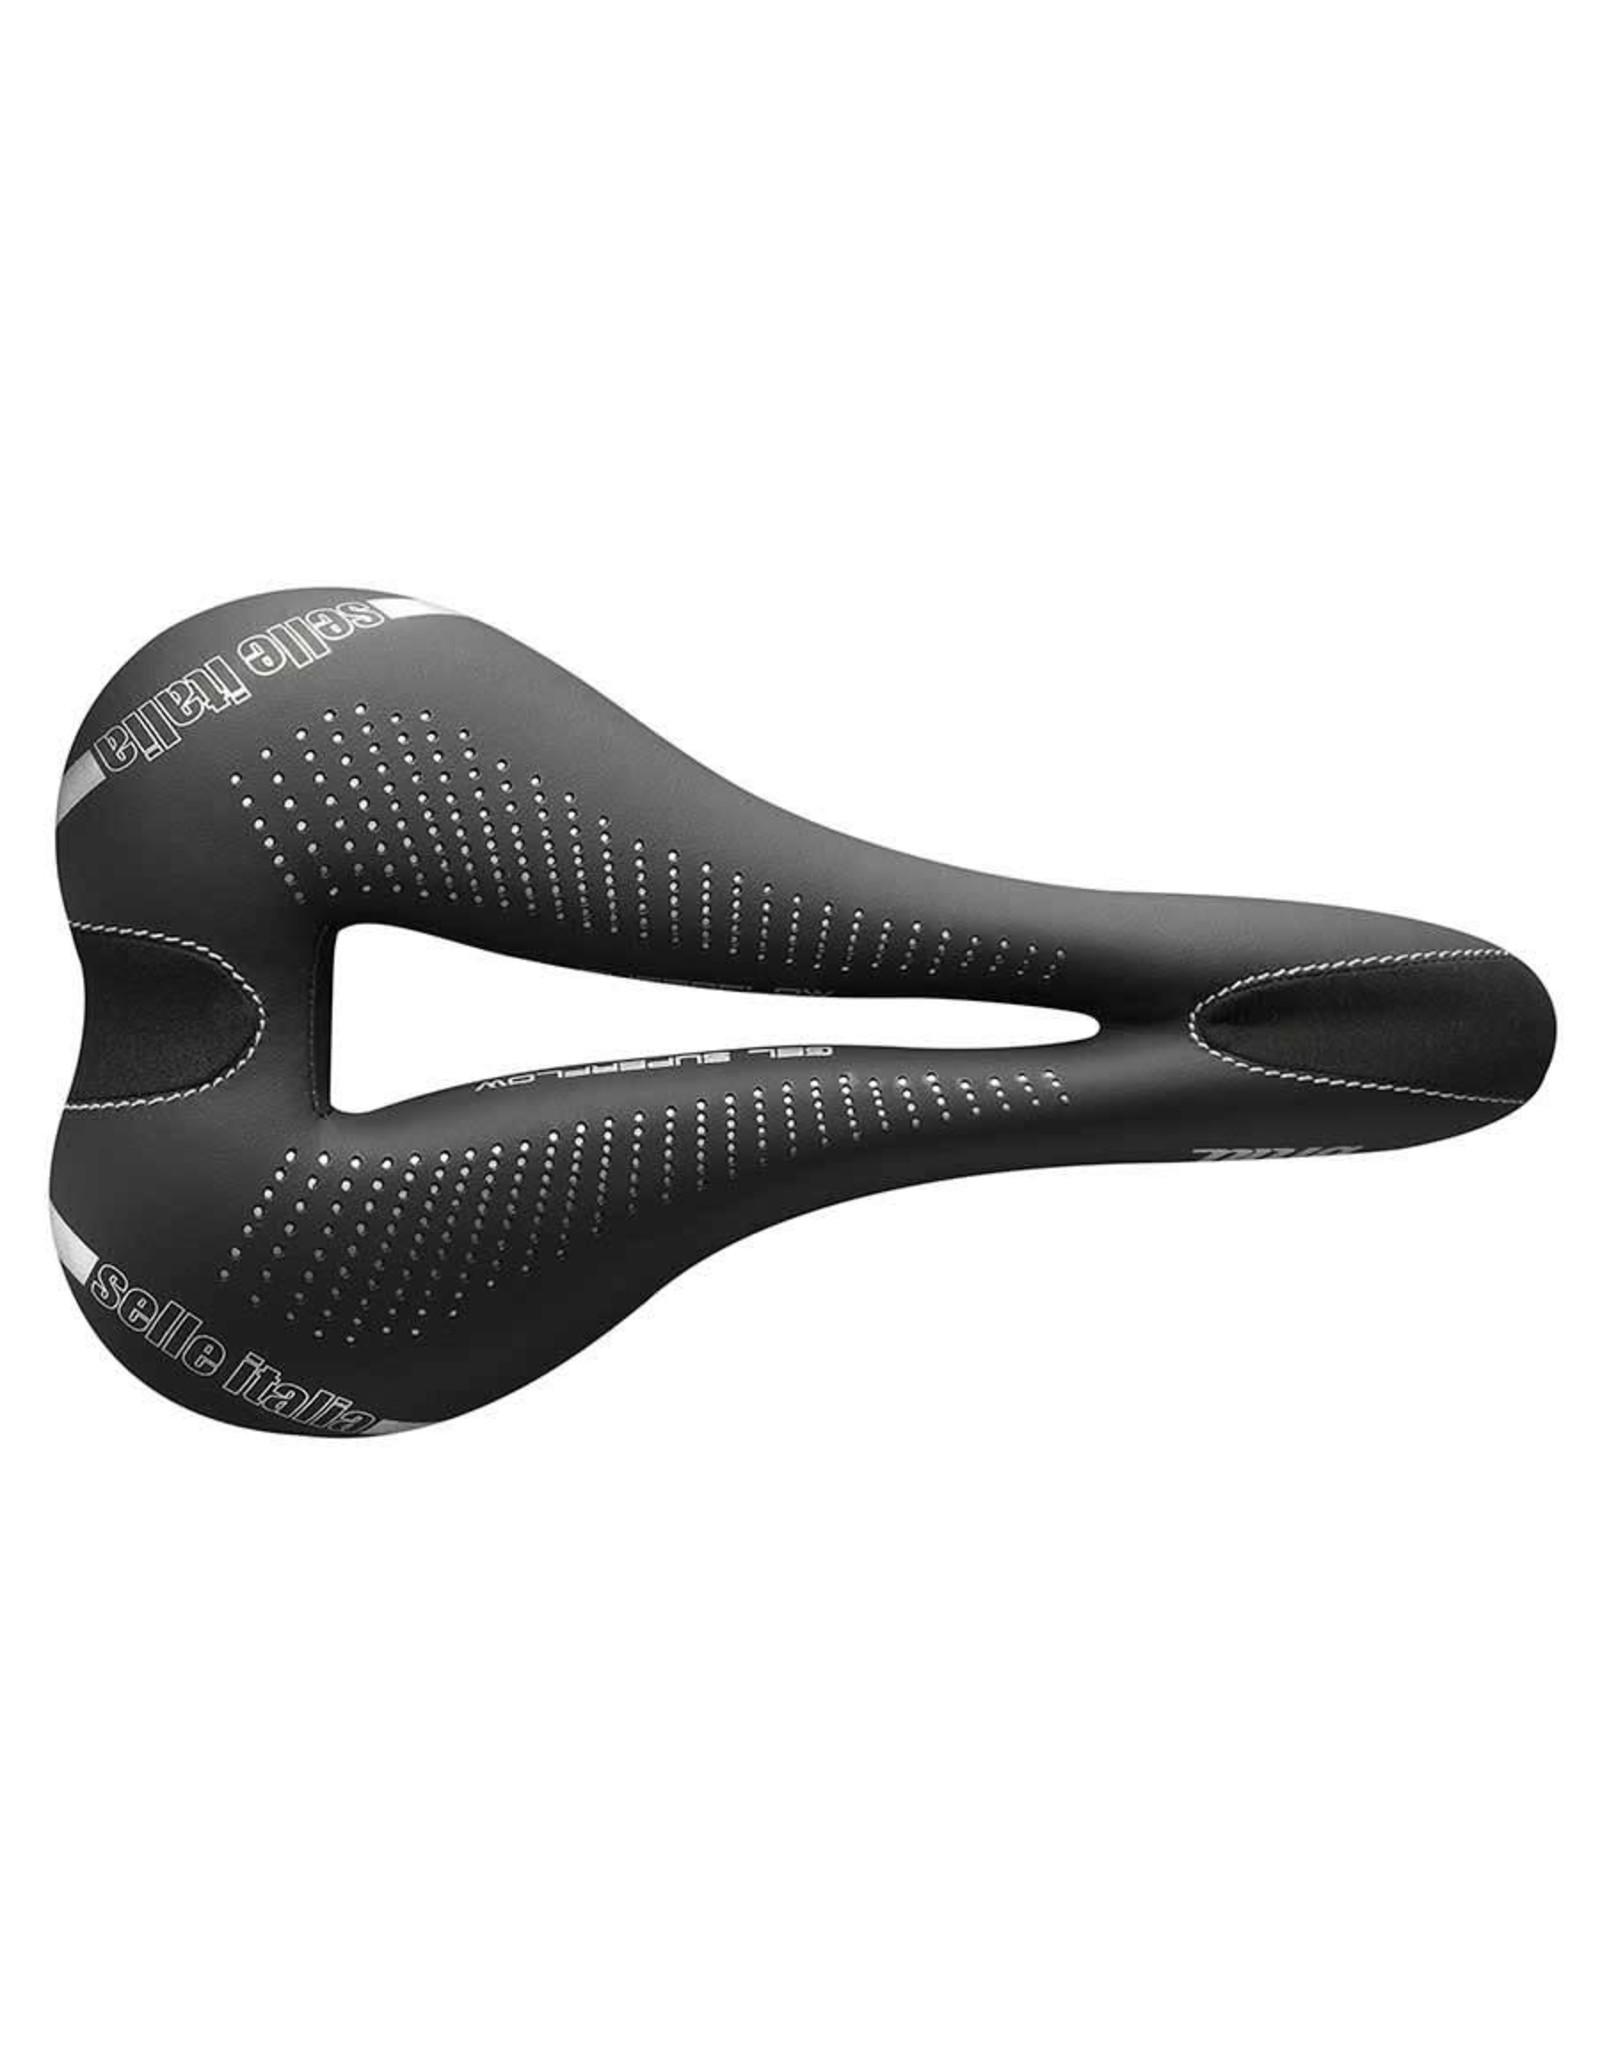 SELLE ITALIA SELLE ITALIA, DIVA GEL SUPERFLOW S3 270x135mm